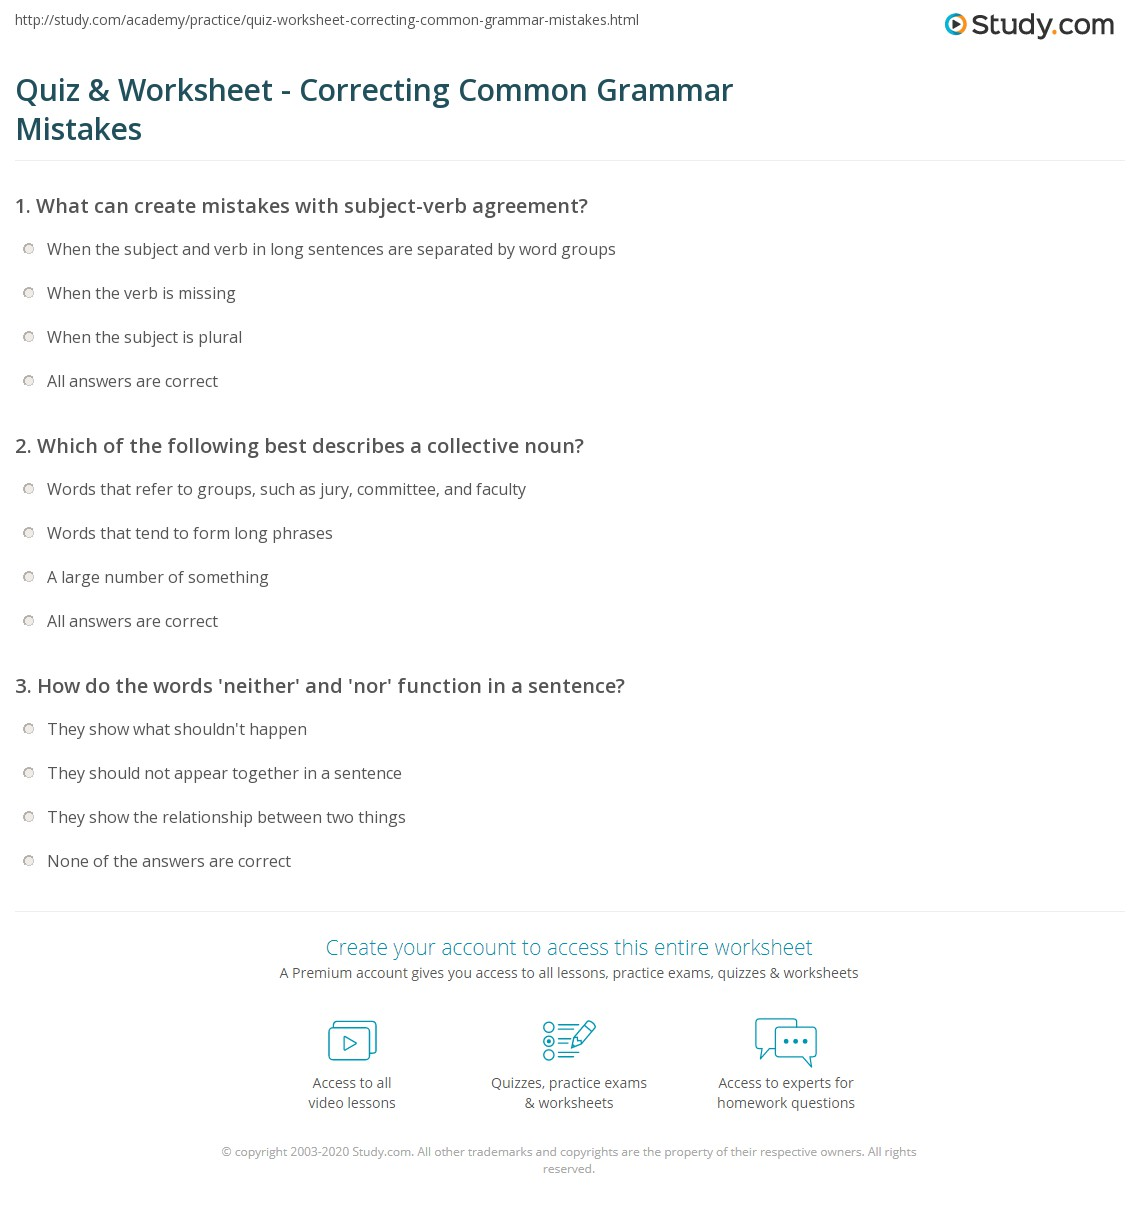 Worksheets Grammar Correction Worksheets quiz worksheet correcting common grammar mistakes study com print examples correction worksheet